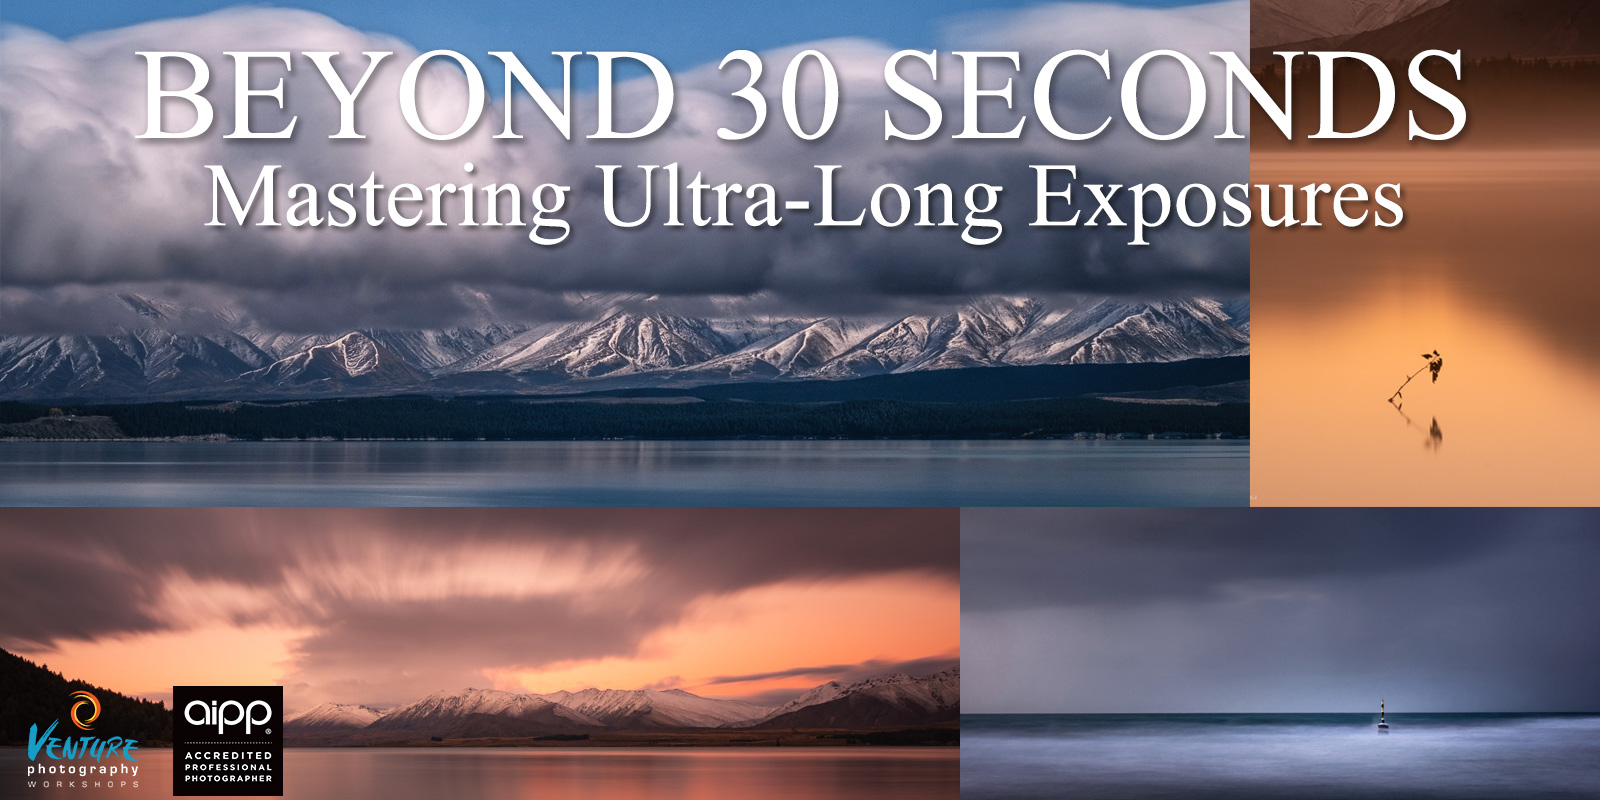 Beyond 30 seconds: Mastering ultra-long exposures